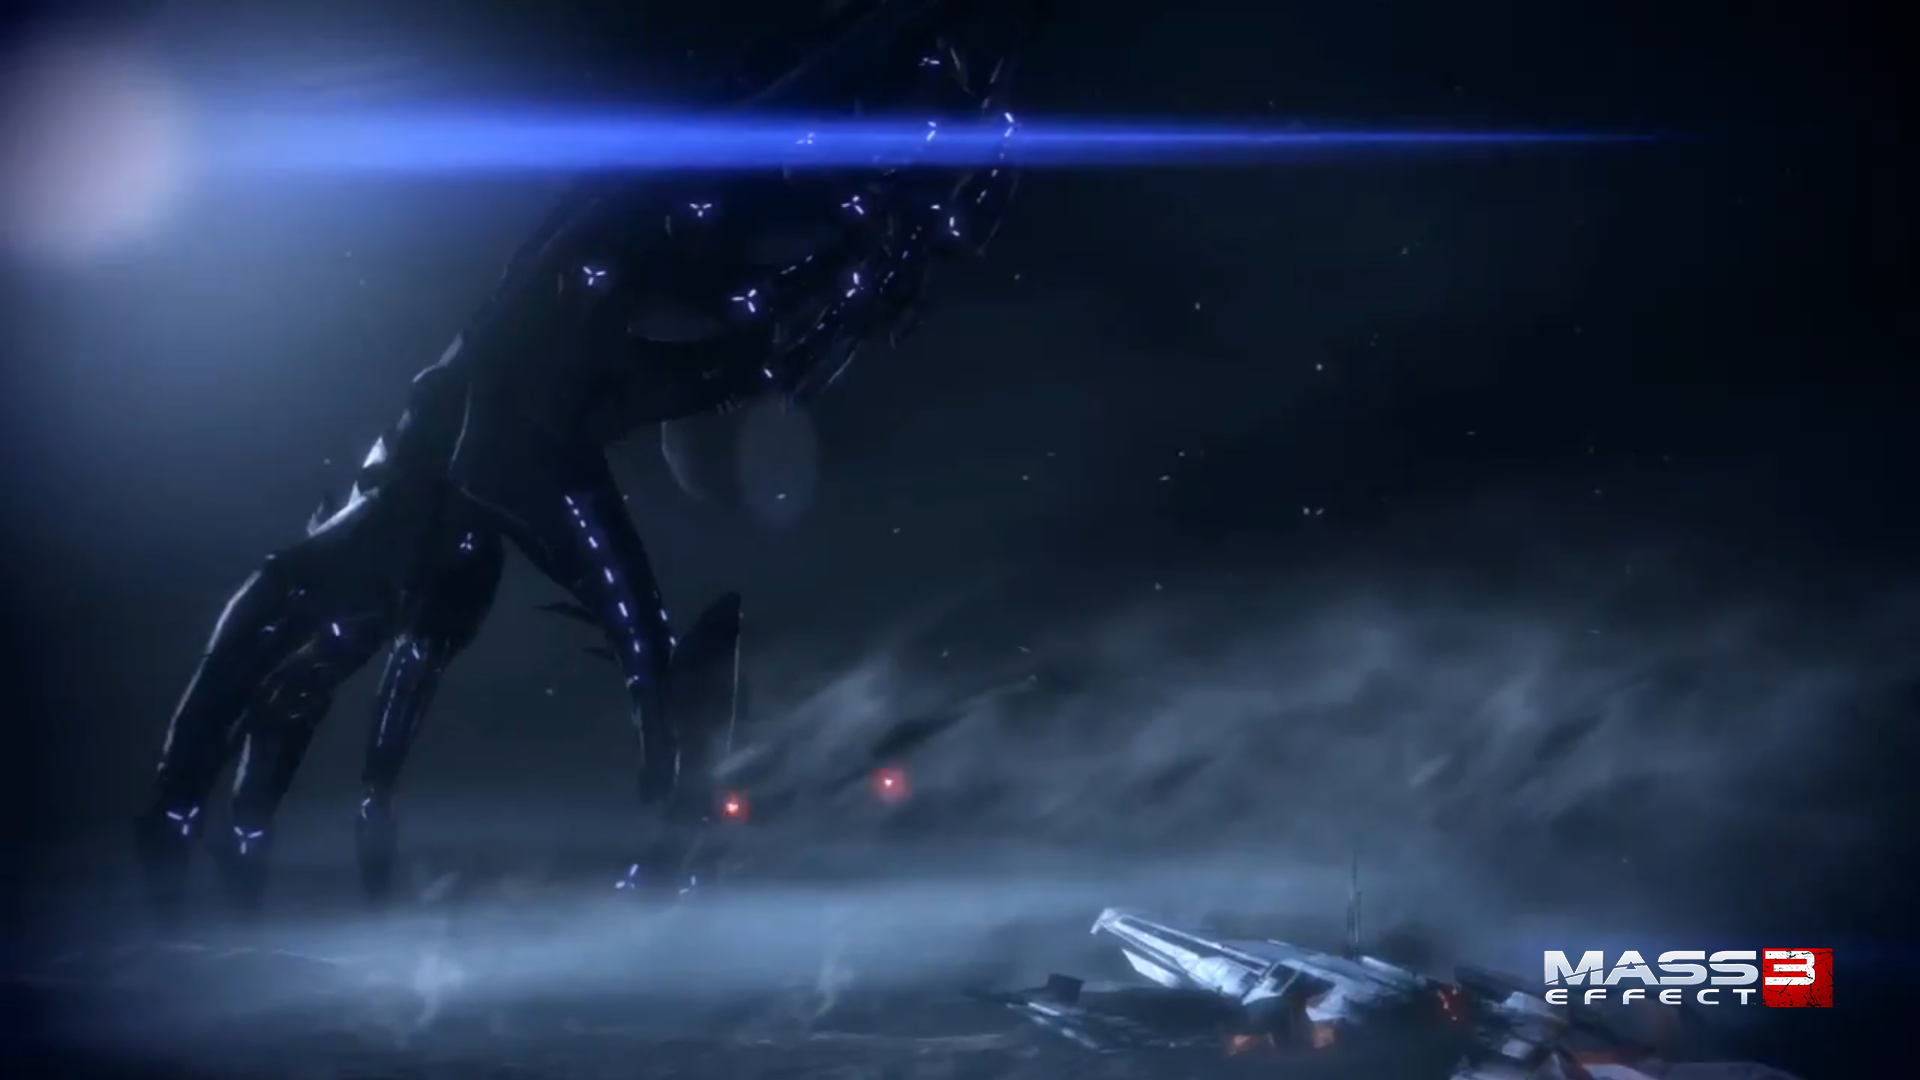 Mass Effect Desktop Backgrounds: When Will These Guys Get Their Own Week? (xpost Gifs) : WTF